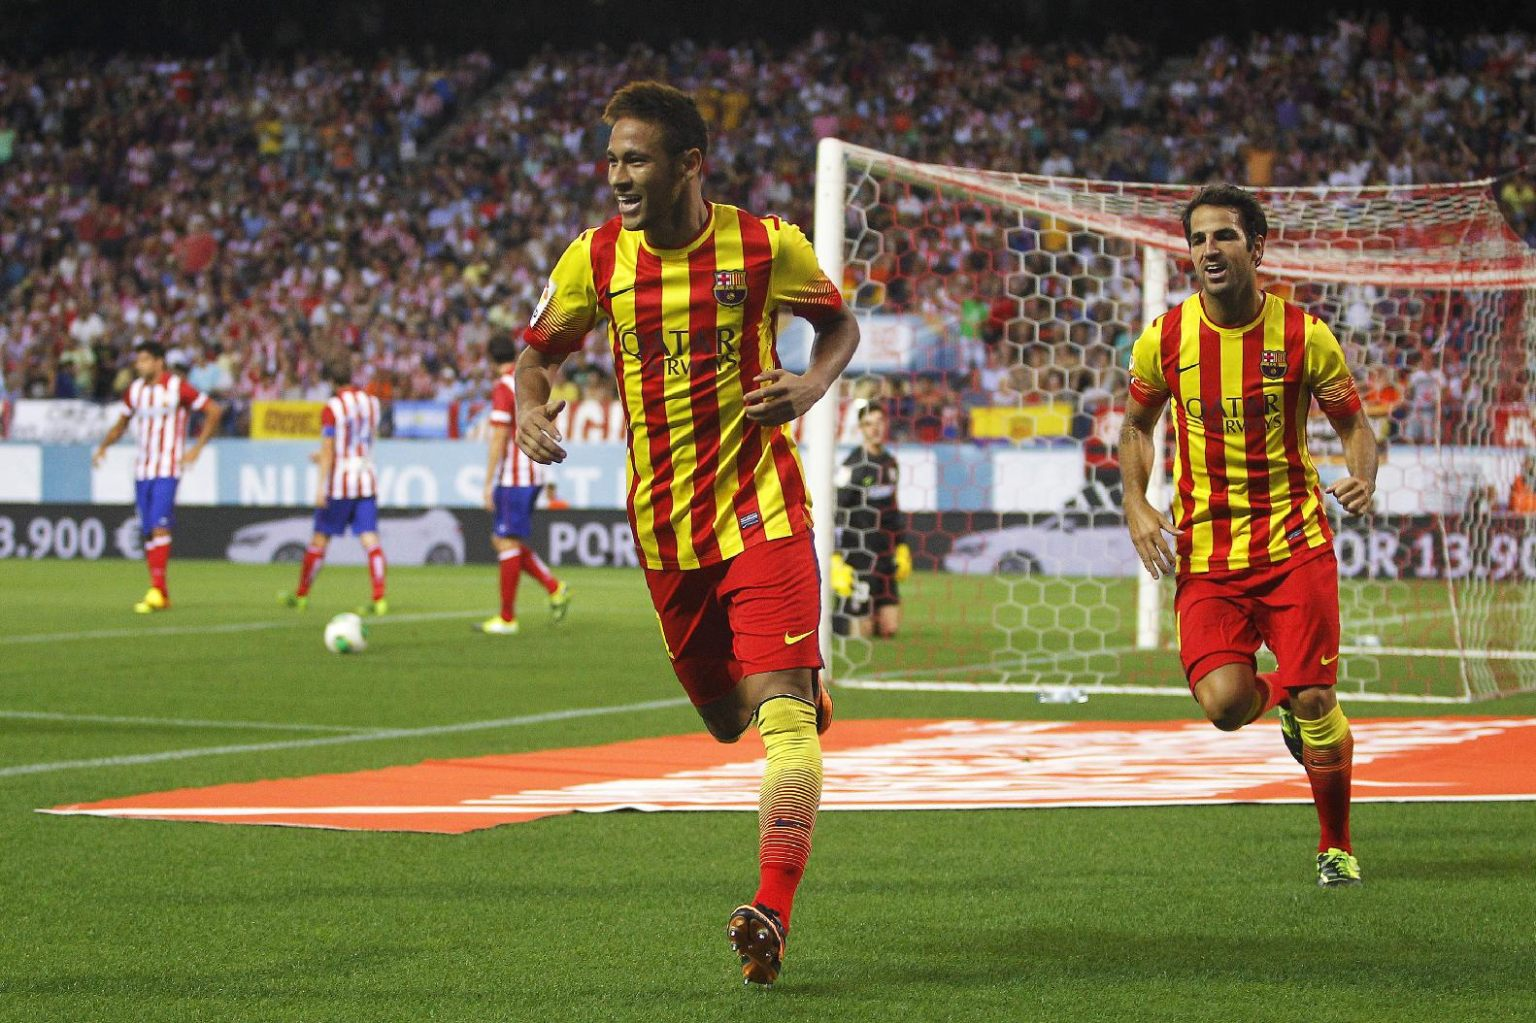 brand new 07ae9 a7c47 Atletico Madrid 1-1 Barcelona: Neymar comes from the bench ...